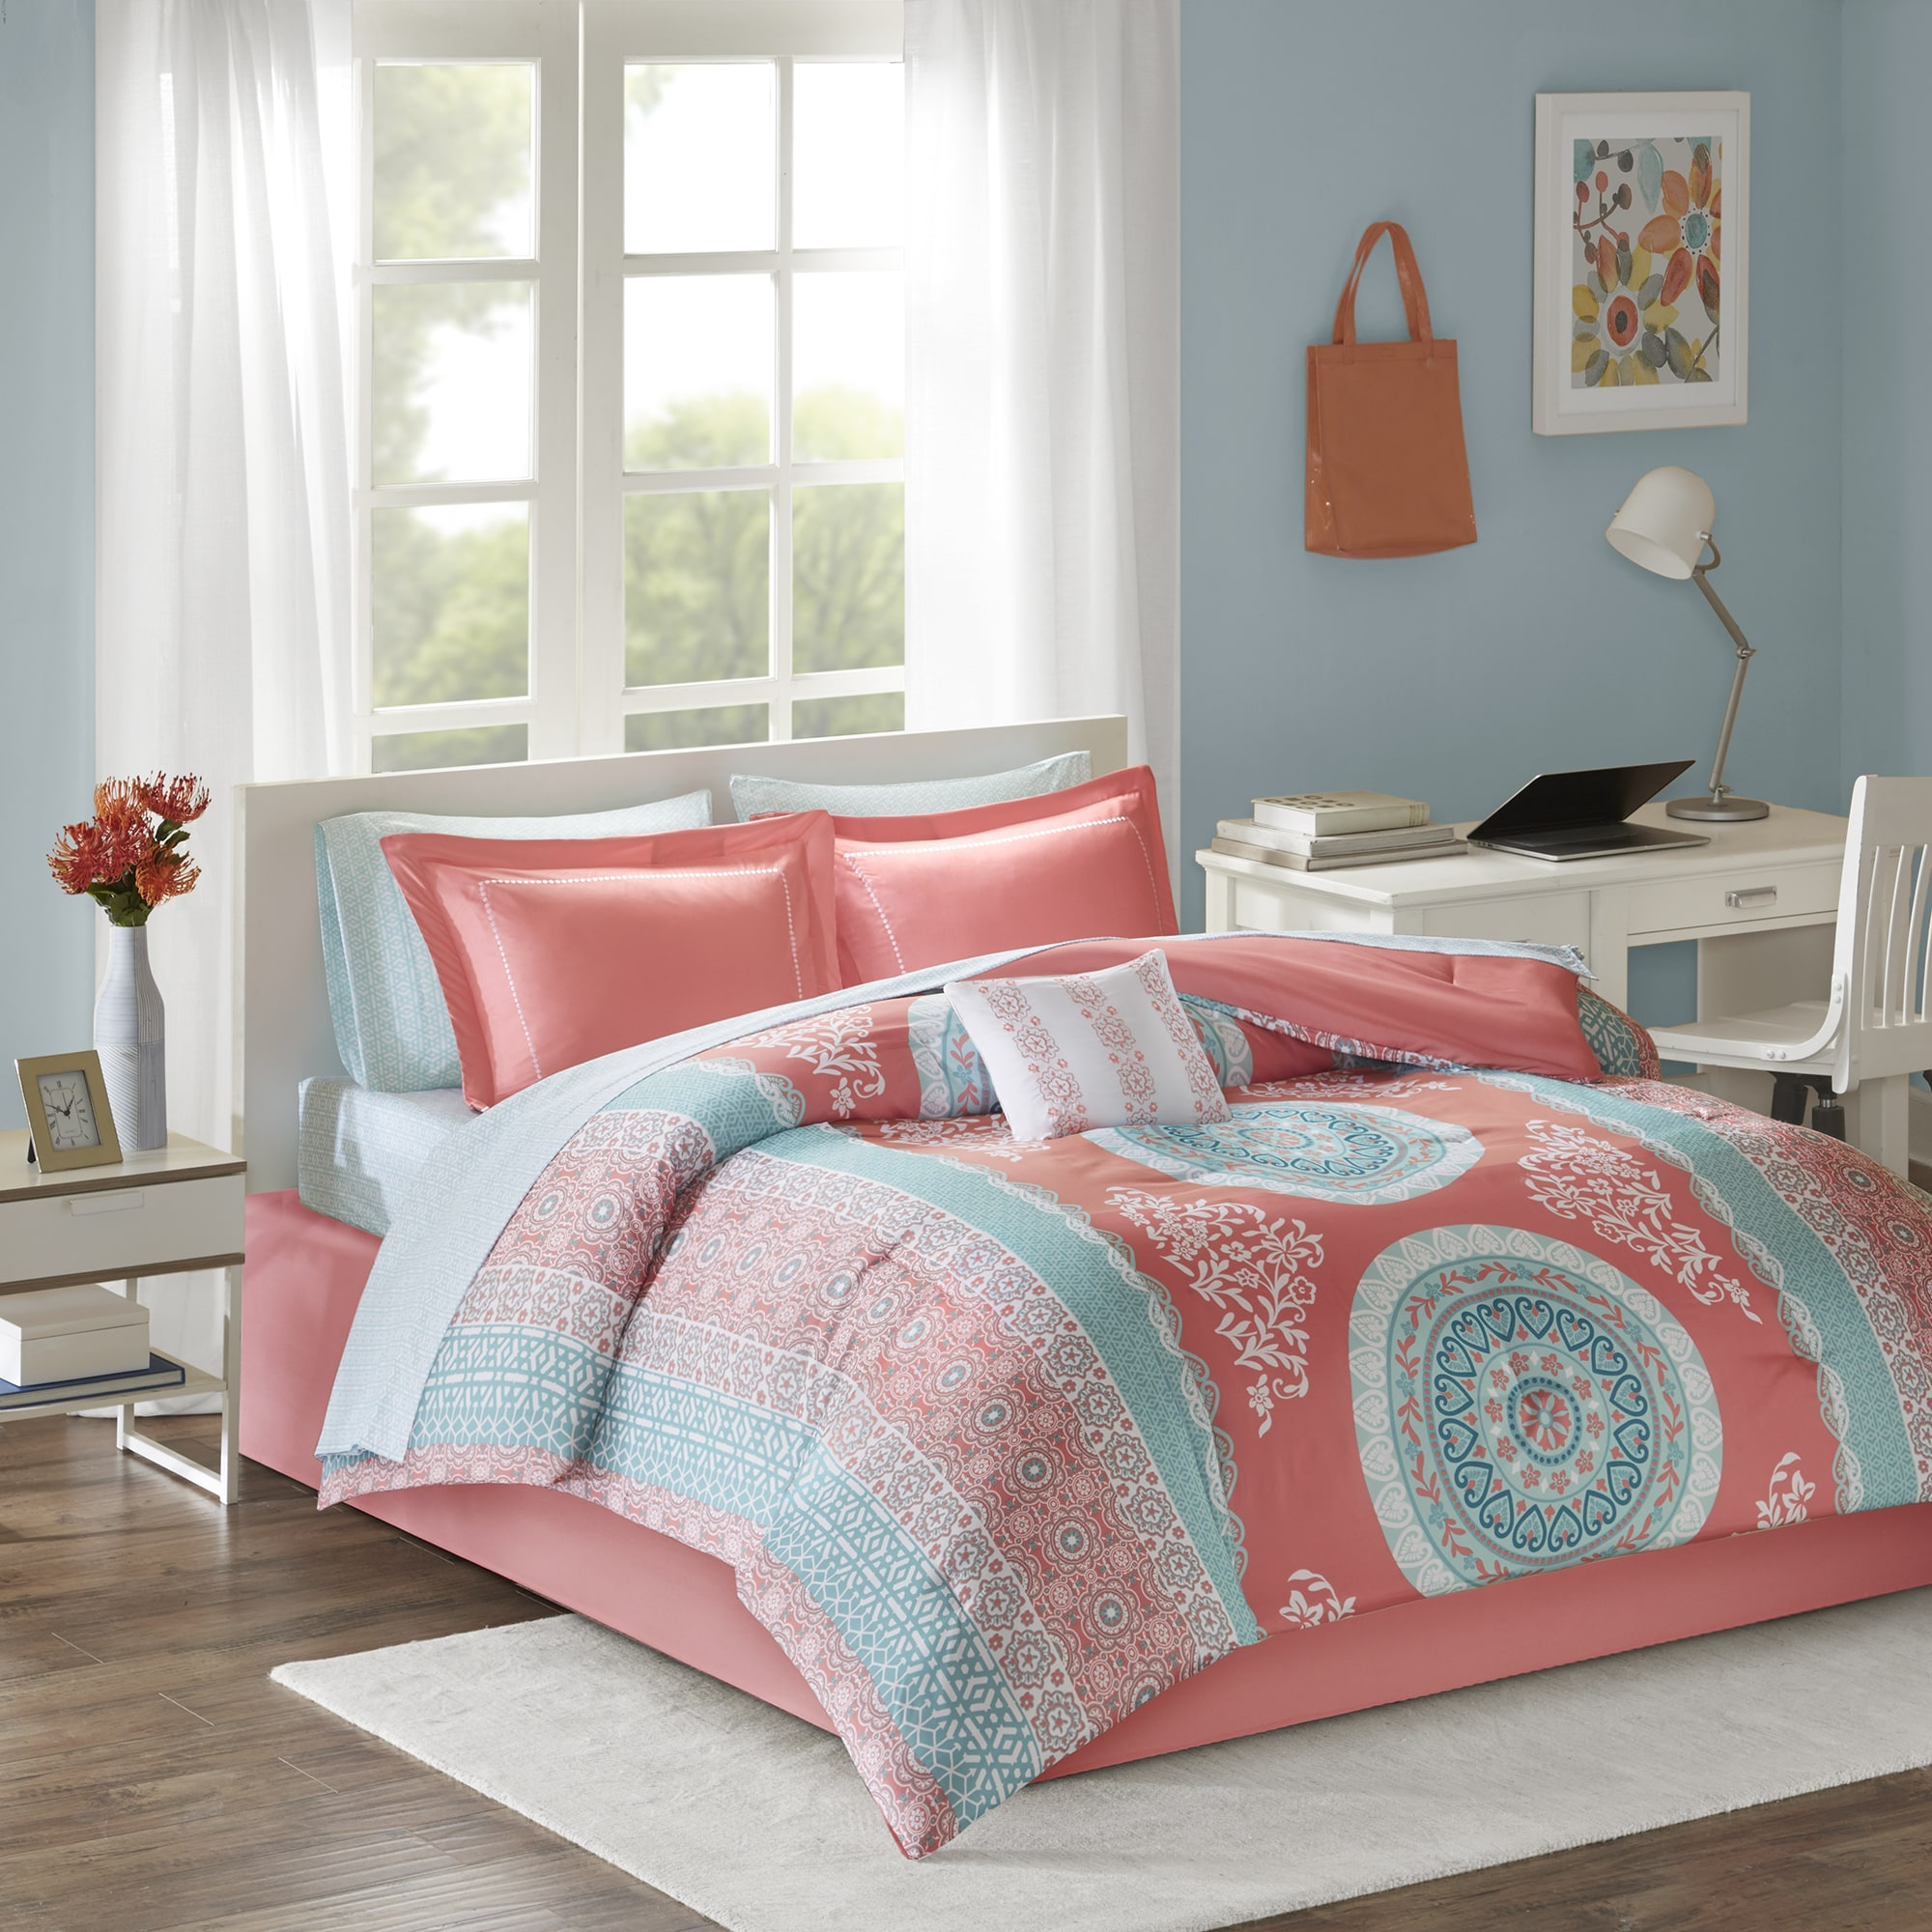 Shop Intelligent Design Eleni Coral Bed in a Bag Set - Free Shipping on coral rings, coral bedroom wallpaper, coral bedroom sets, coral baby bedding, coral bedroom curtains, coral bathroom, coral kitchen, coral bedroom accessories, coral bedroom paint, coral master bedroom, coral bedroom renovations, coral candles, coral bedroom color,